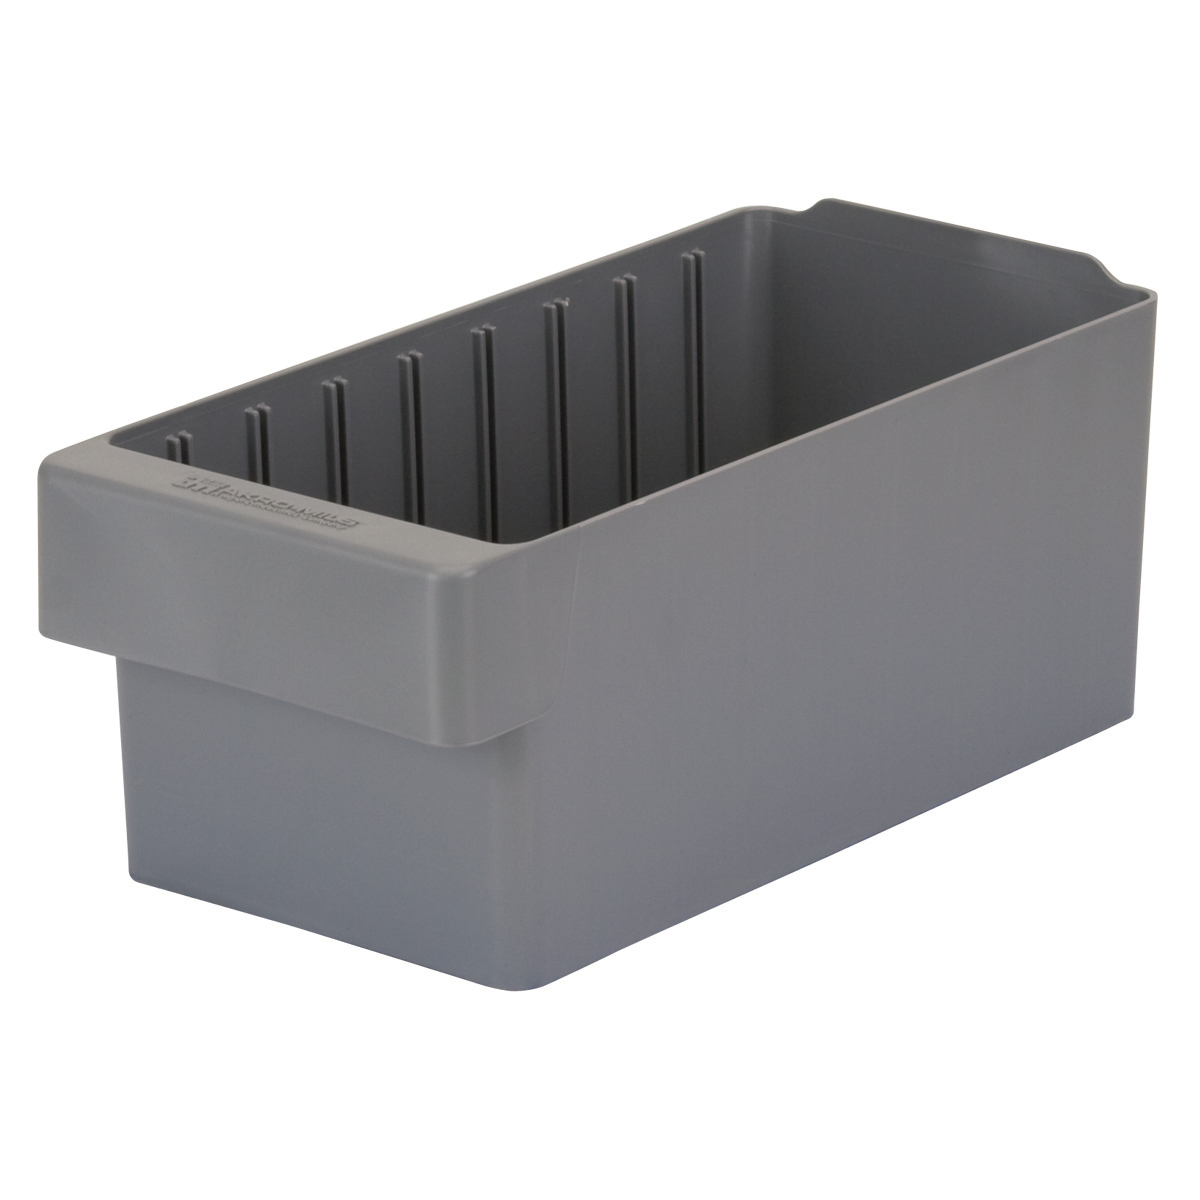 AkroDrawer 11-5/8 x 5-5/8 x 4-5/8, Gray (31162GRY).  This item sold in carton quantities of 6.